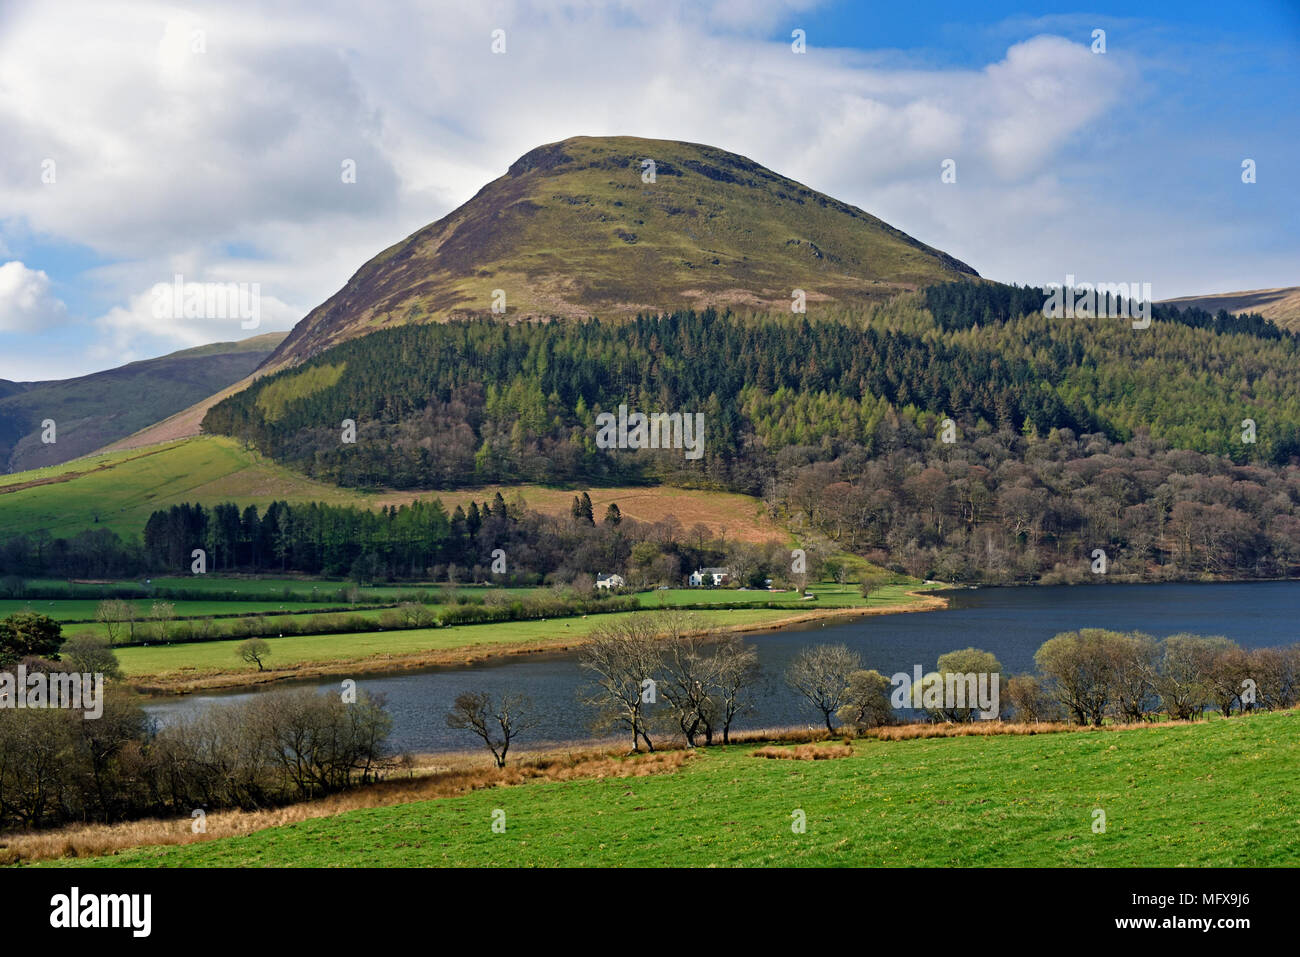 Loweswater, Holme Wood and Burnbank Fell. Lake District National Park, Cumbria, England, United Kingdom, Europe. - Stock Image